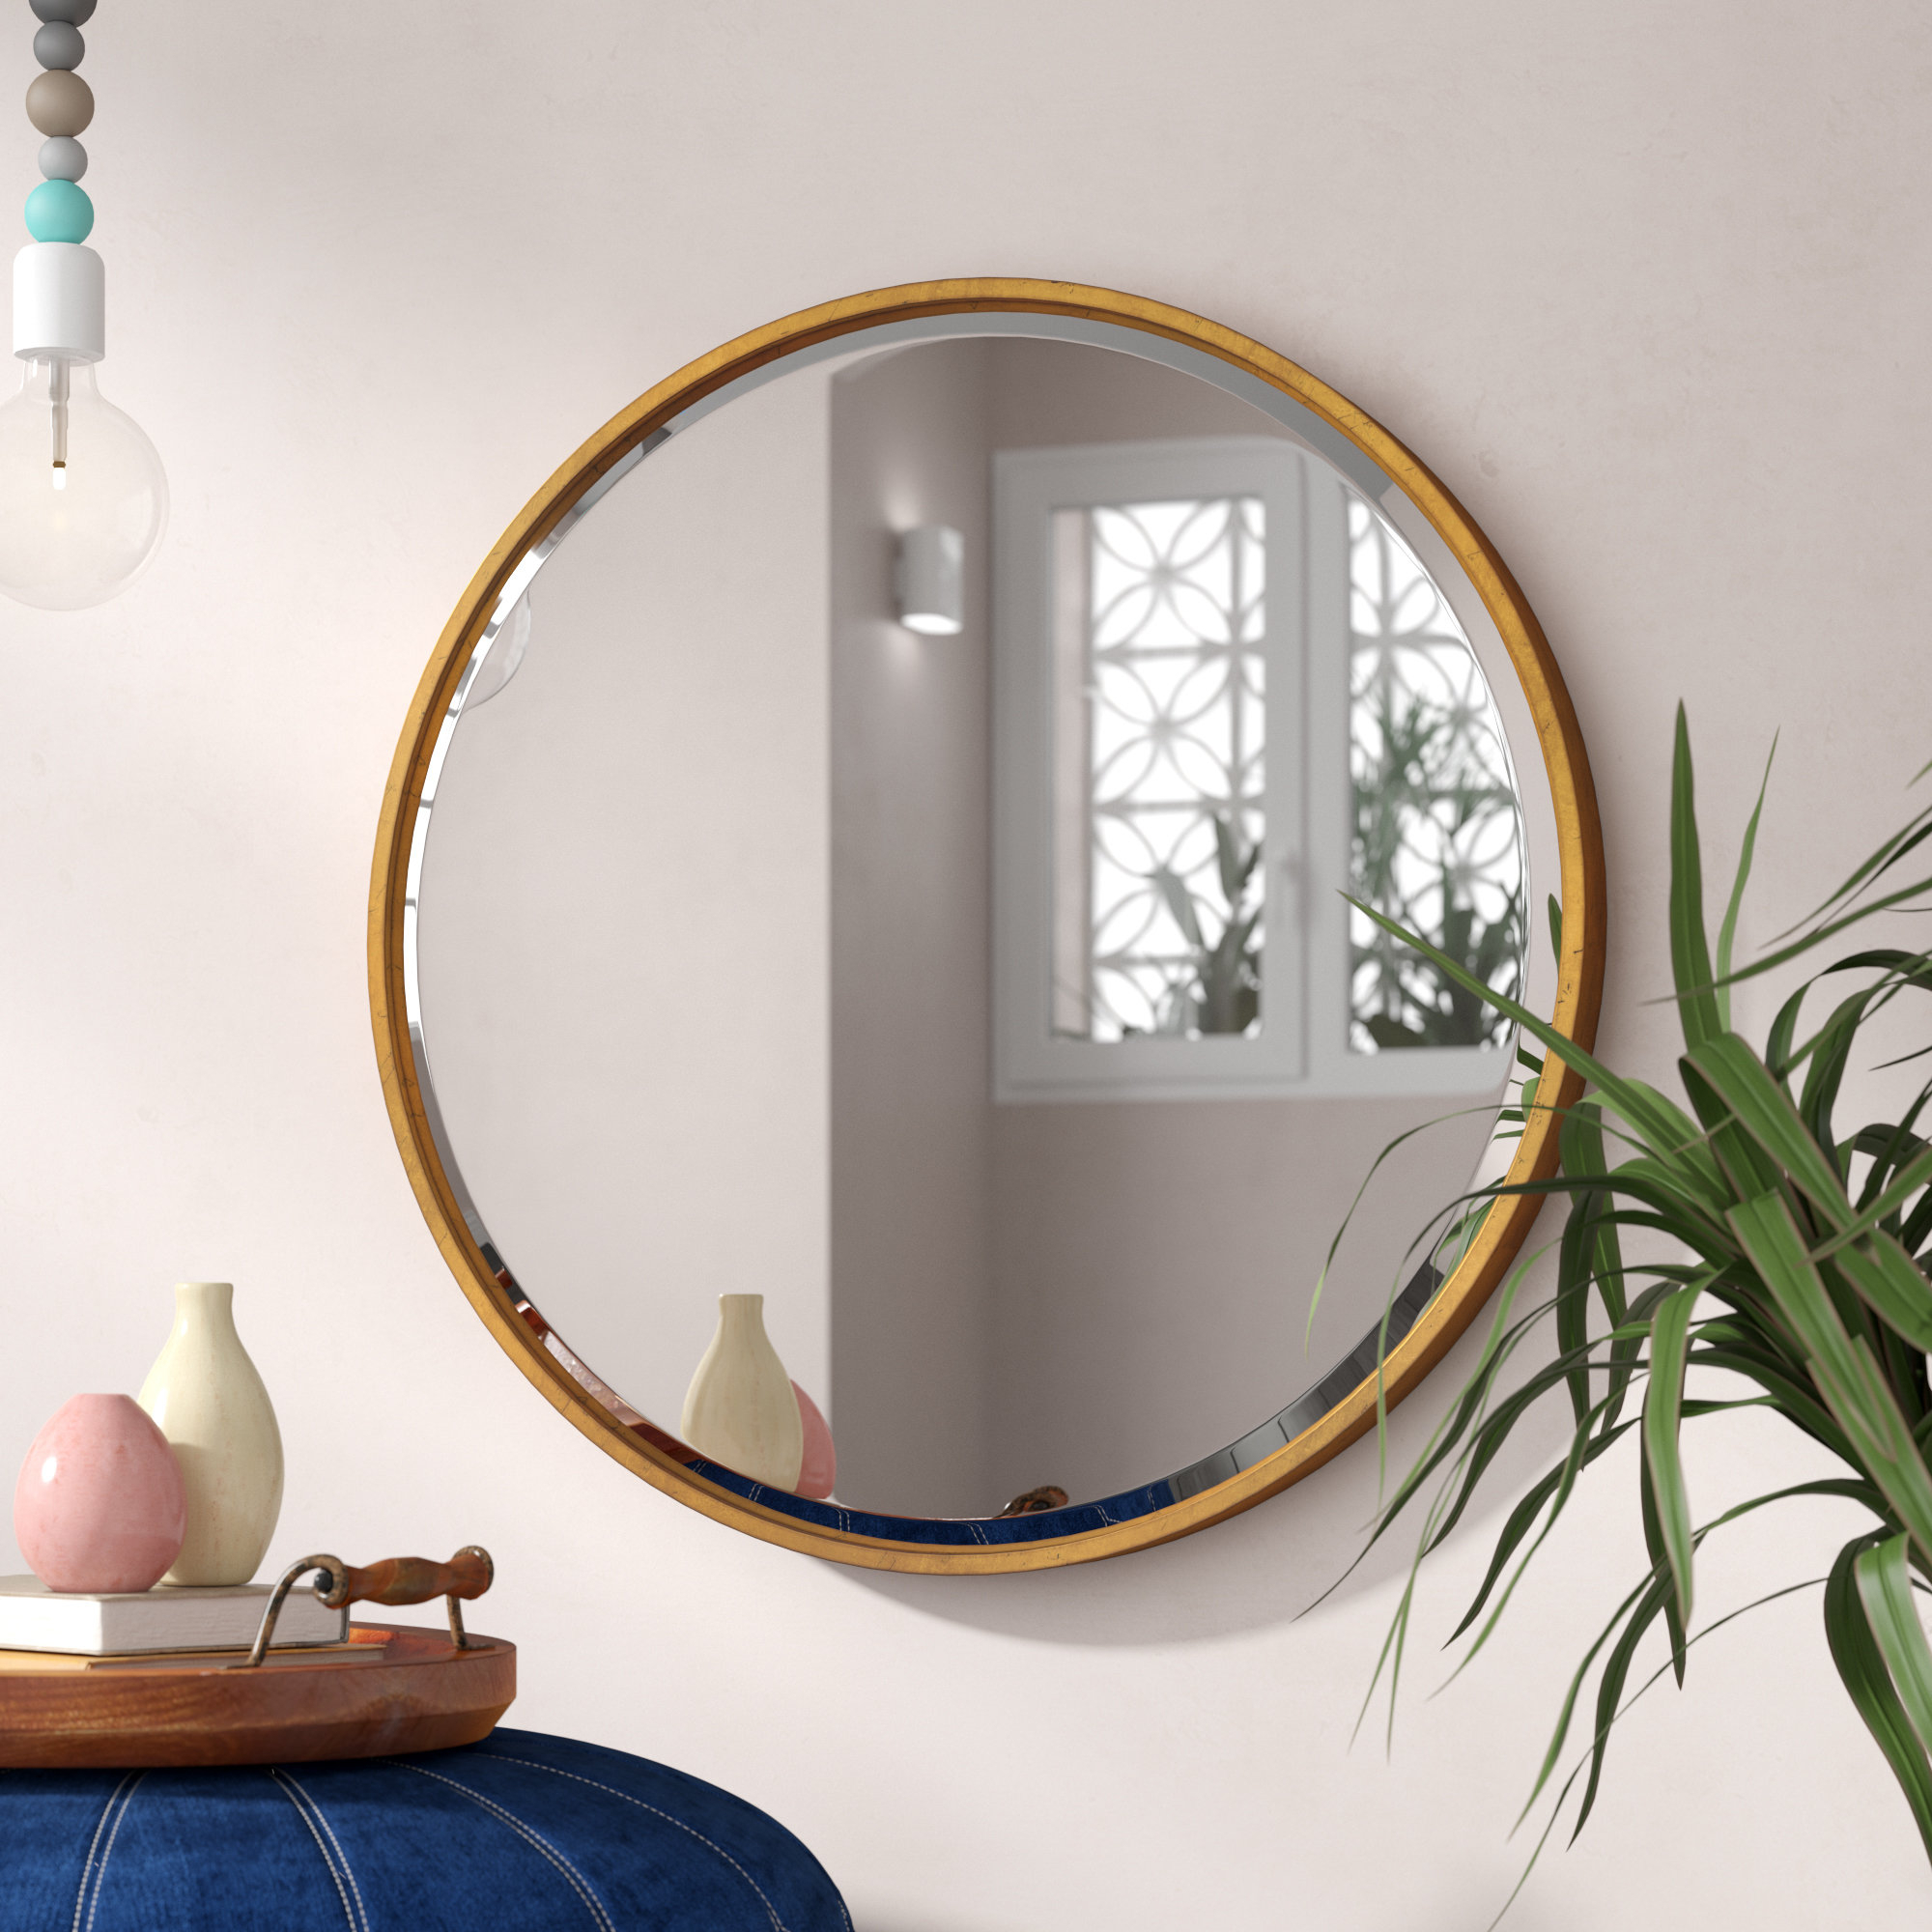 Jamie Modern & Contemporary Beveled Wall Mirror Intended For Loftis Modern & Contemporary Accent Wall Mirrors (View 4 of 20)